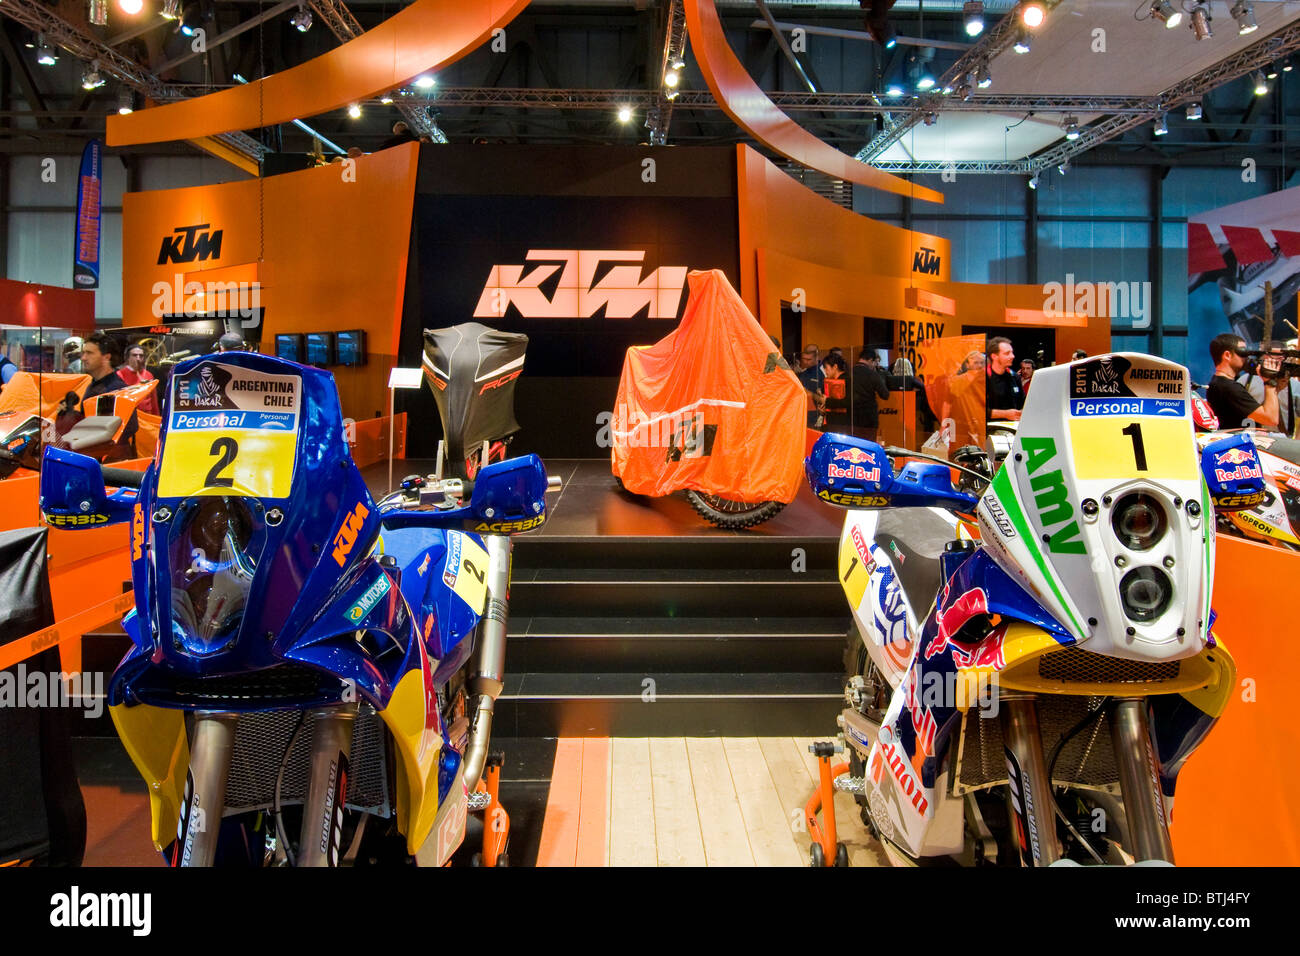 KTM, Exibition bicycle and motorcycle, Milan 2010 - Stock Image